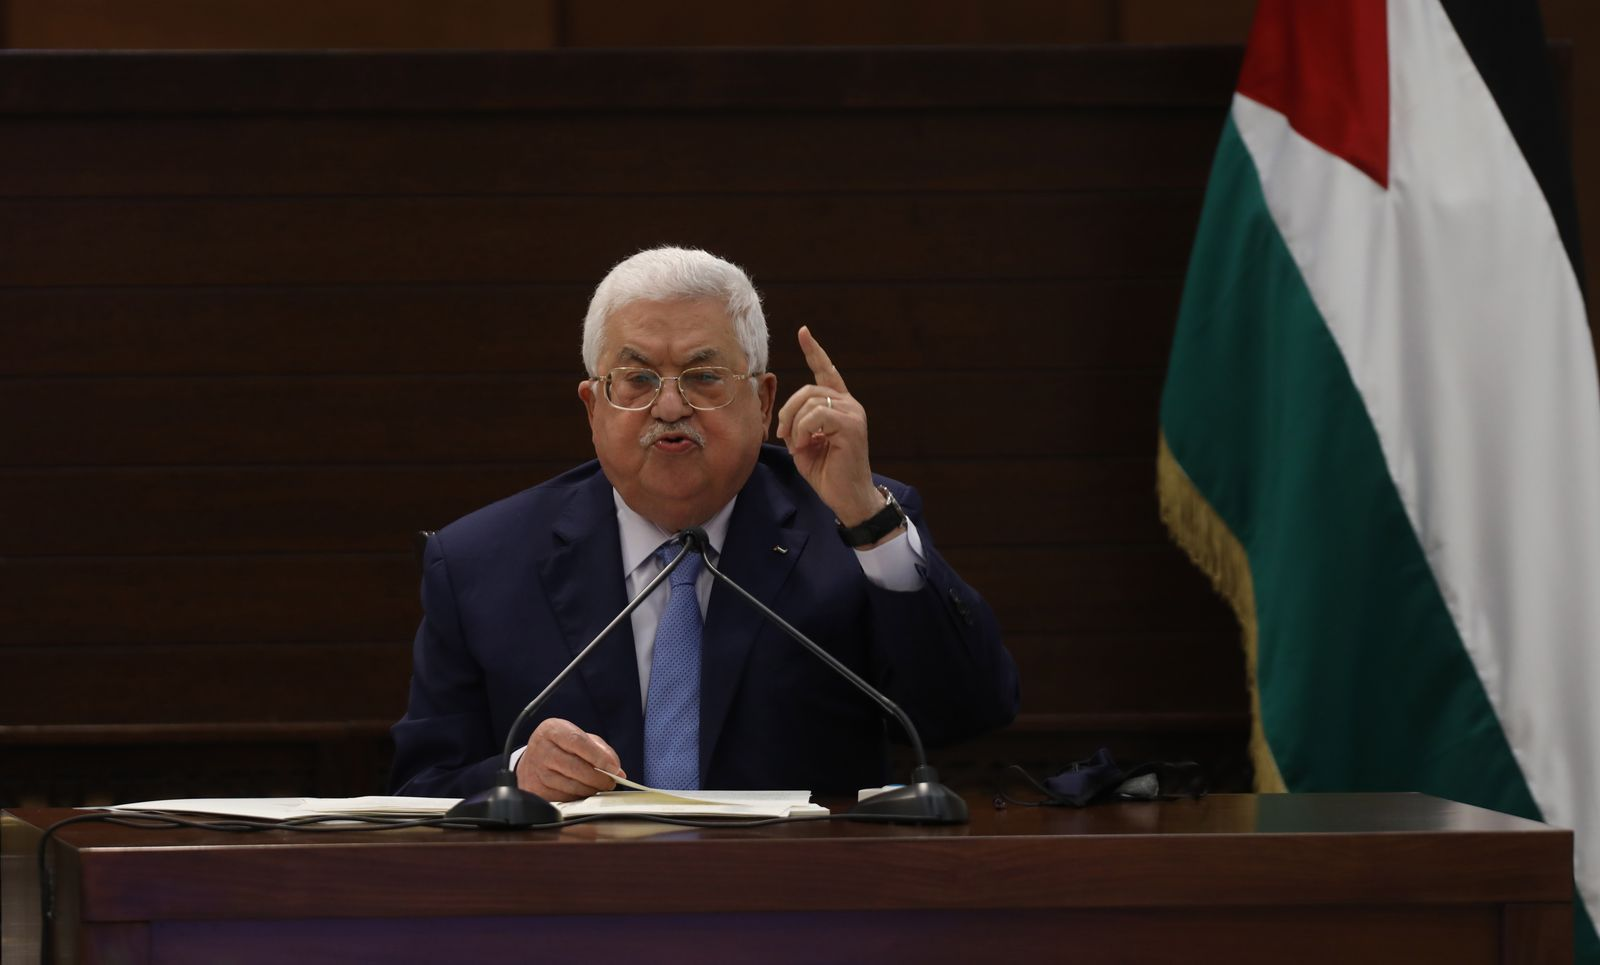 Palestinian President Abbas to hold meetings on upcoming general elections